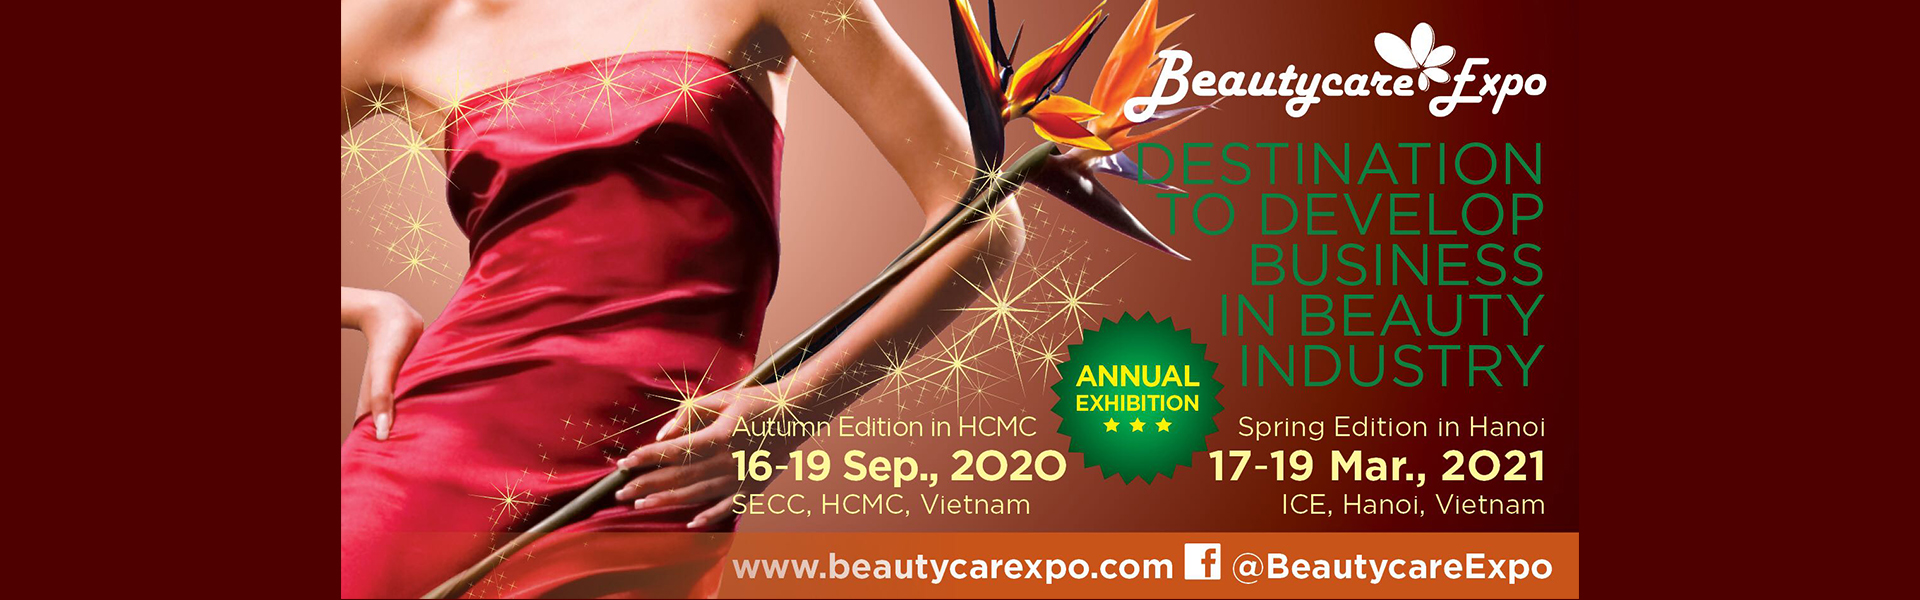 2021 Beauty Care Expo